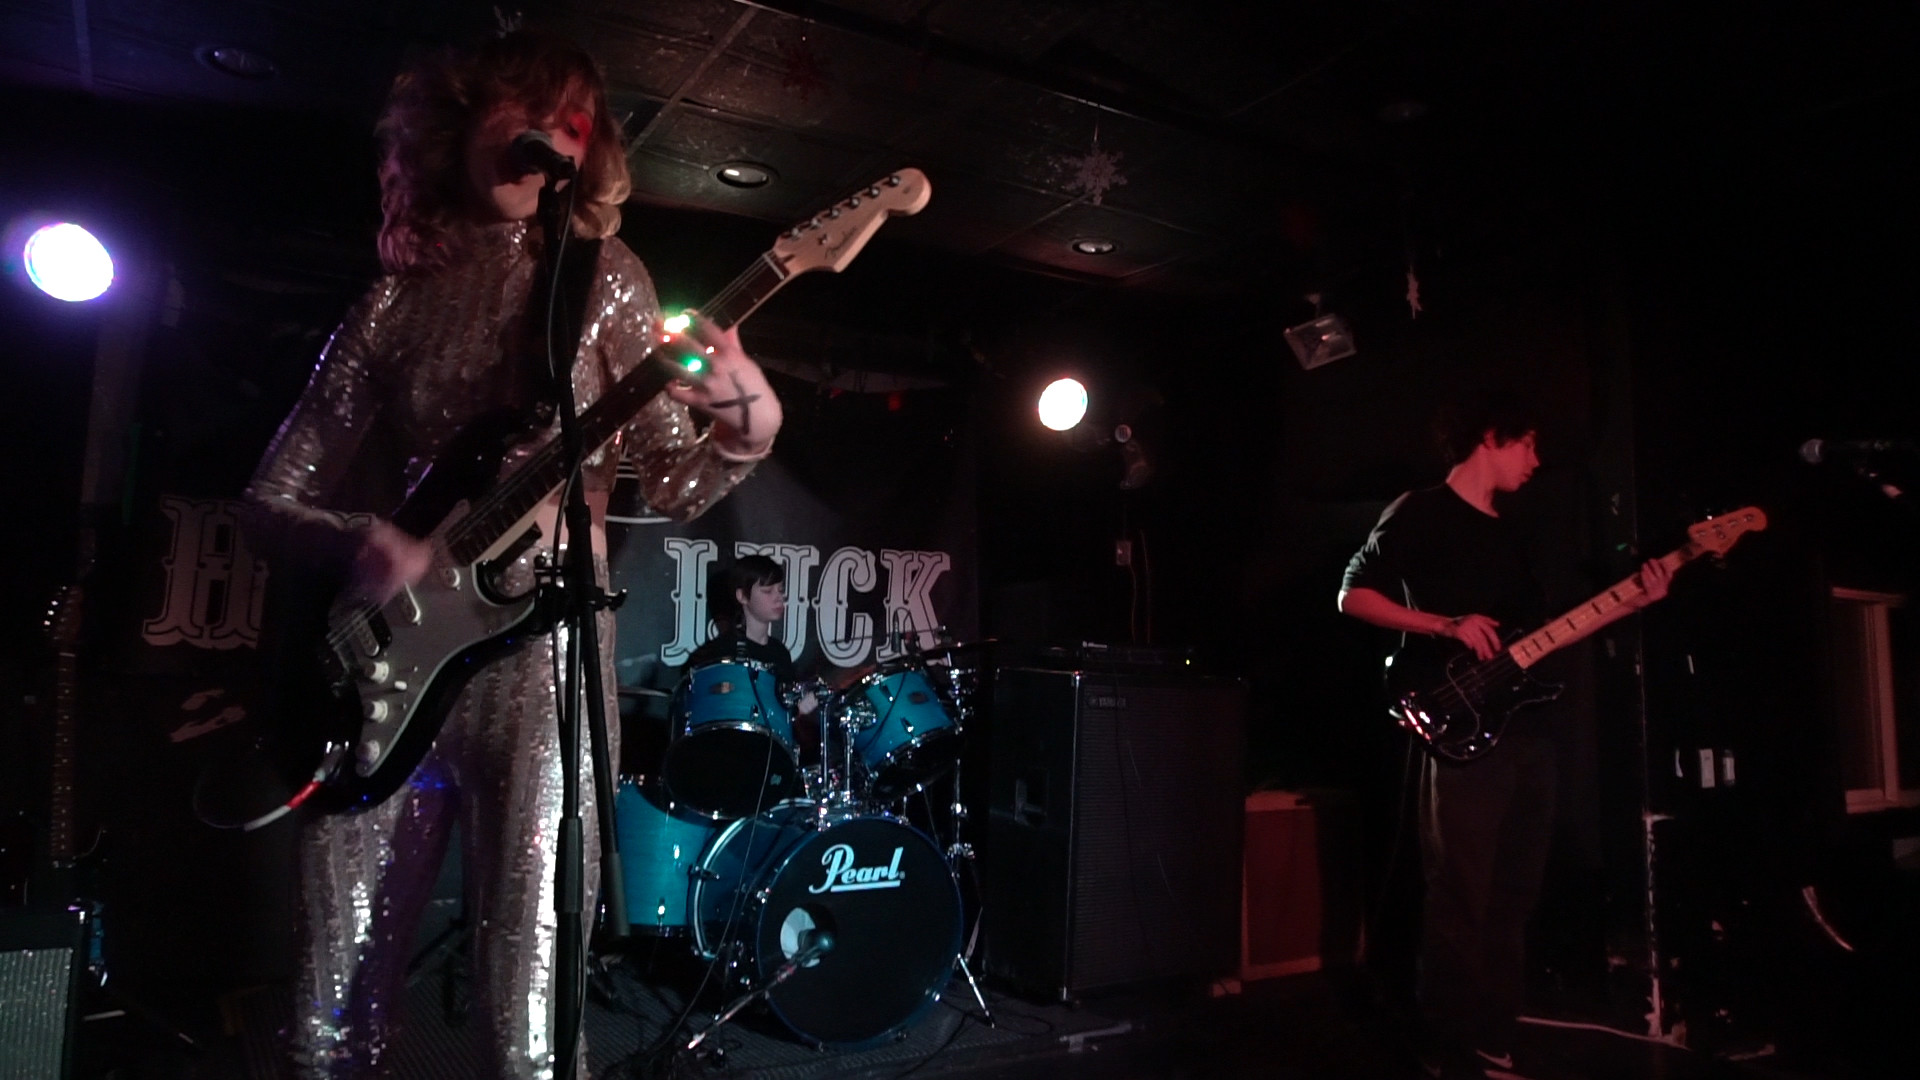 Live at The Hard Luck